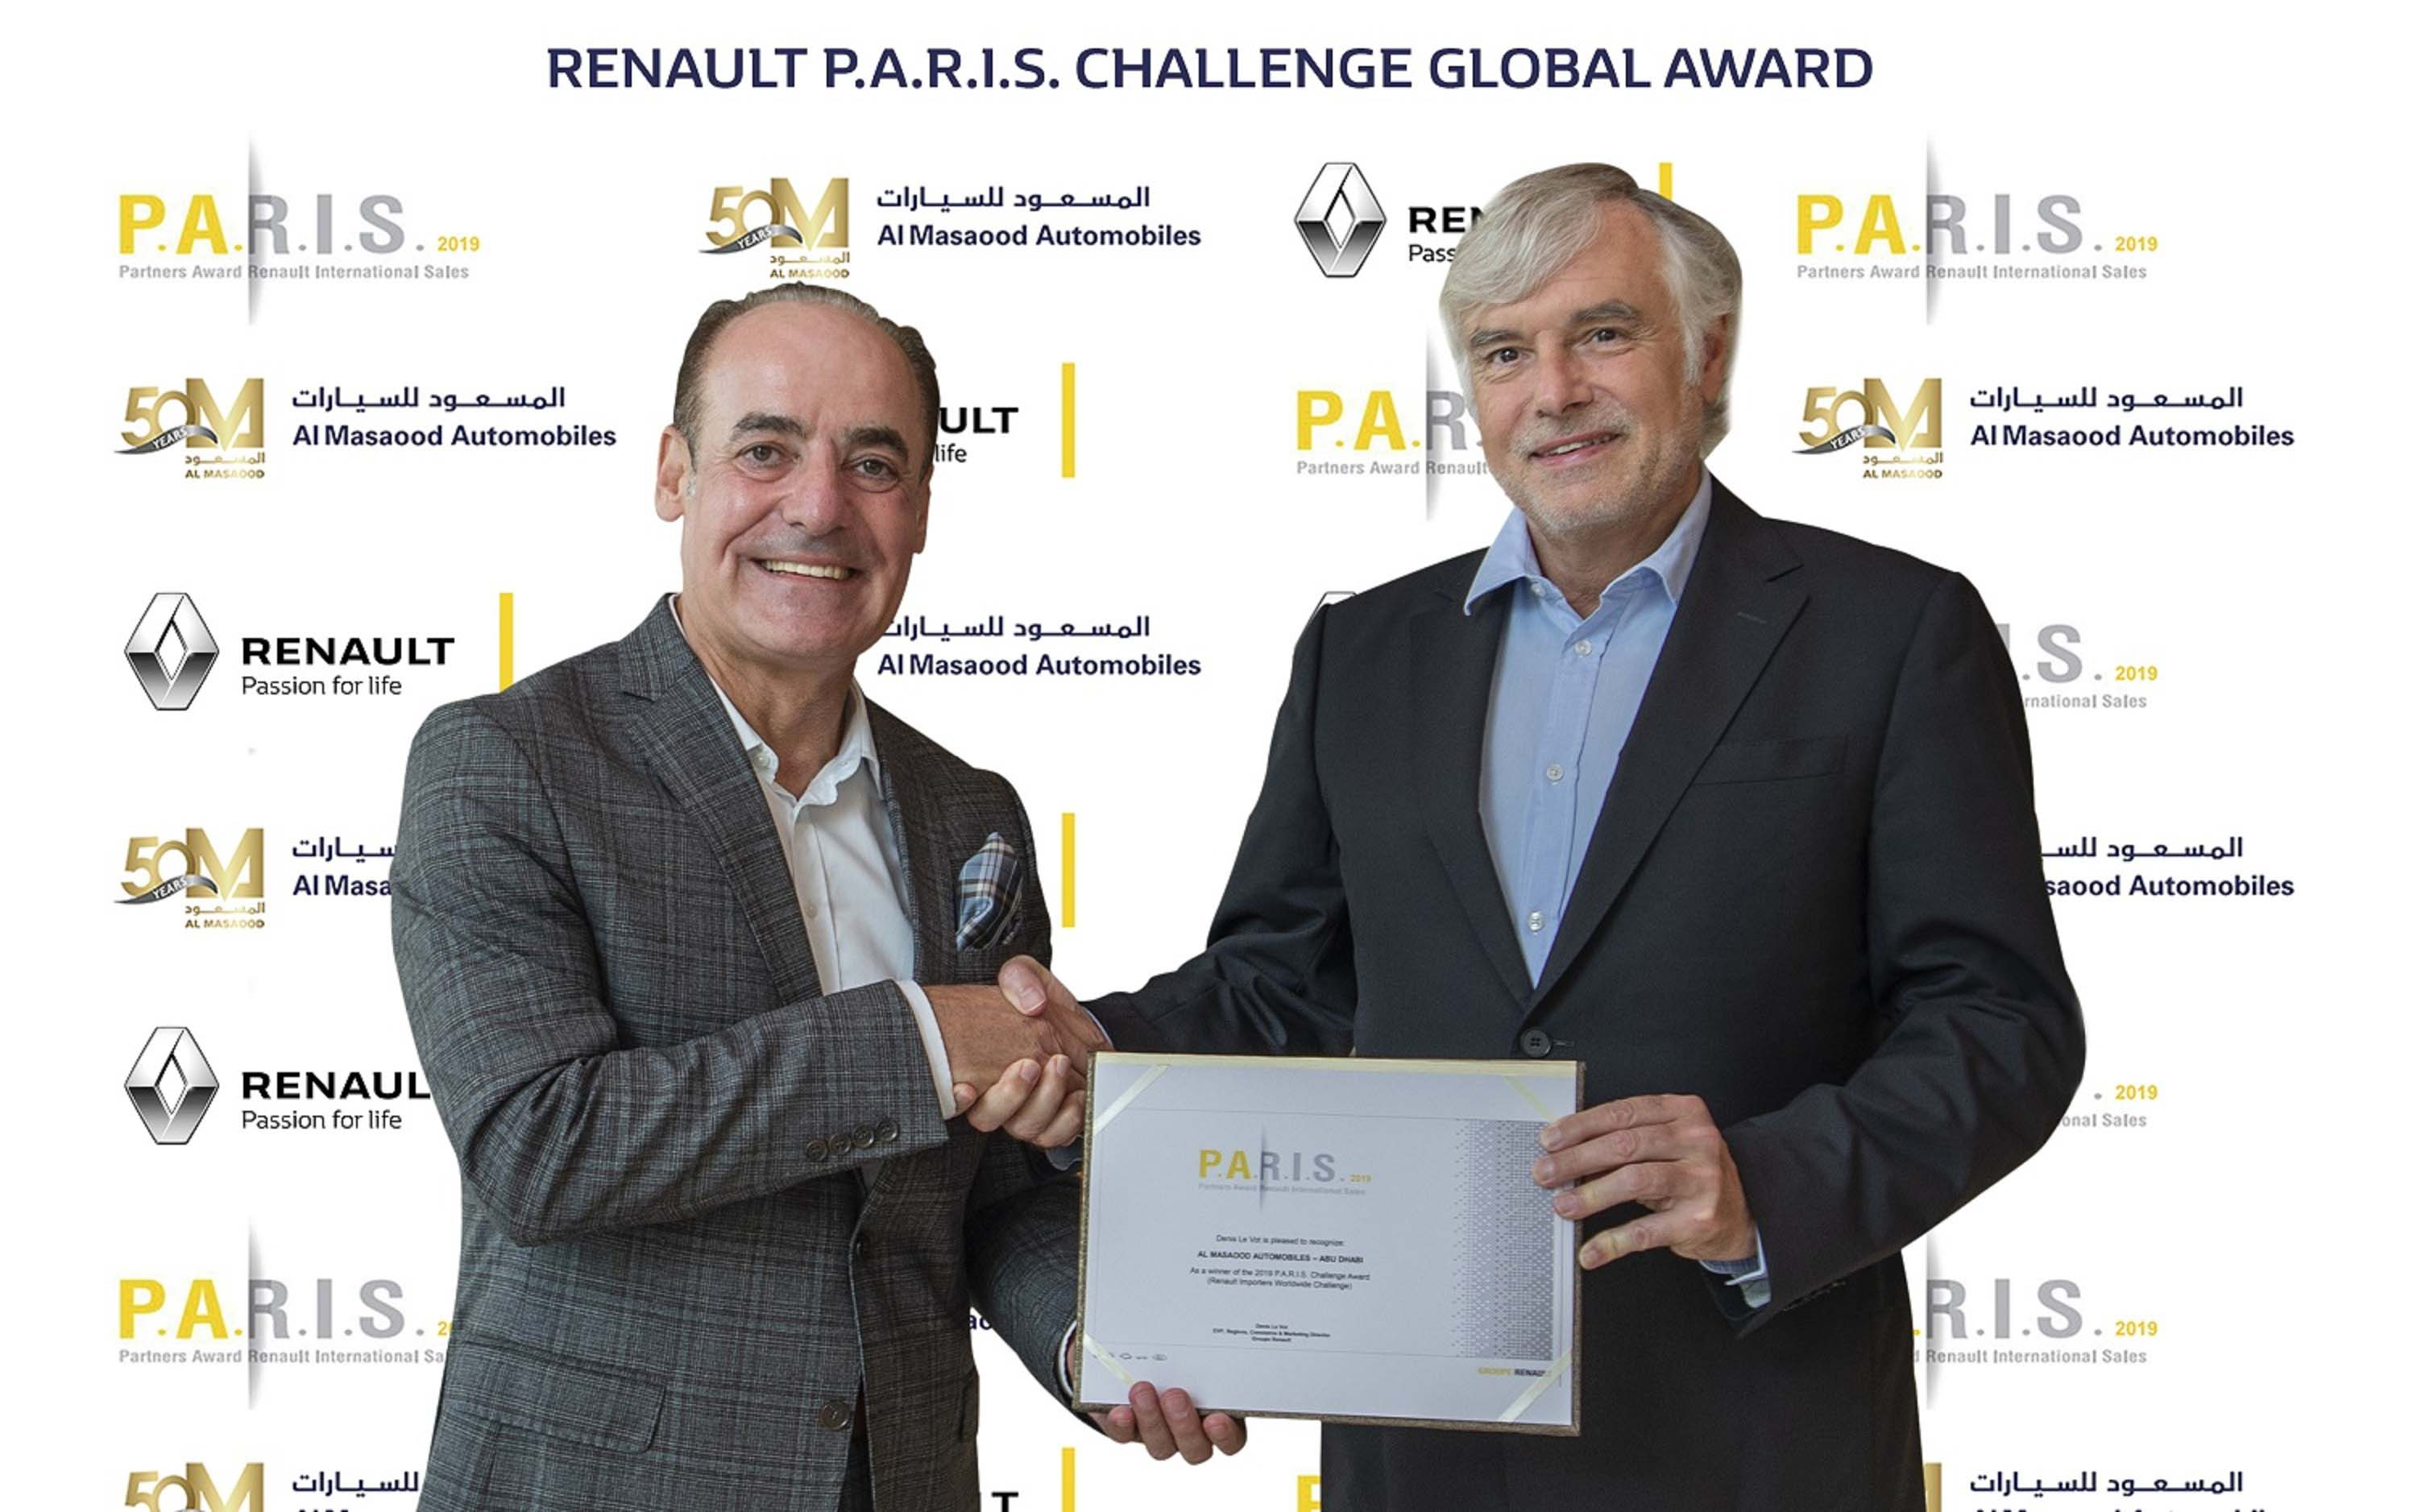 """Al Masaood Automobiles wins the prestigious """"Renault Global Partners Award, P.A.R.I.S. Challenge"""" for the fiscal year 2019"""